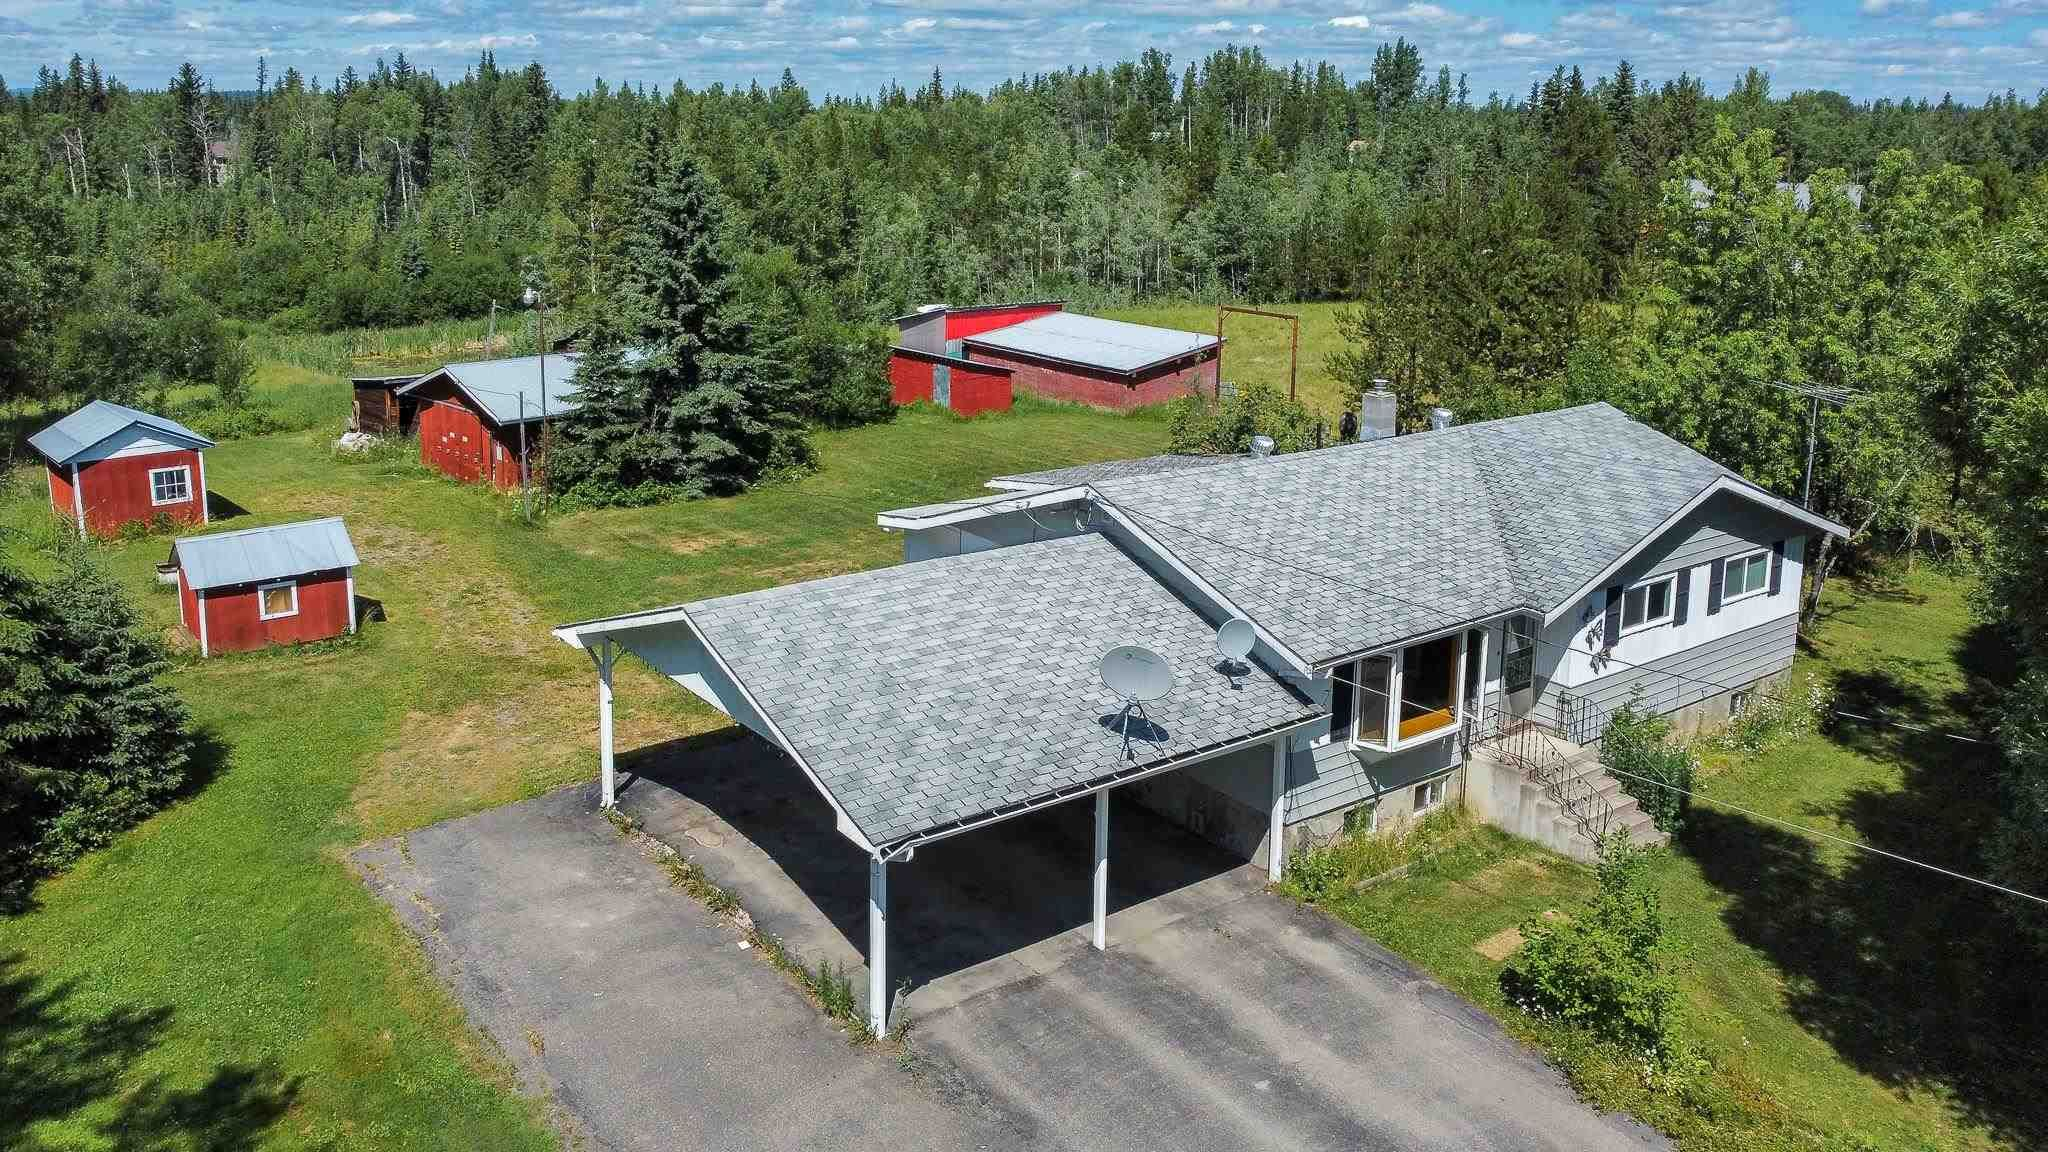 Main Photo: 12775 HILLCREST Drive in Prince George: Beaverley House for sale (PG Rural West (Zone 77))  : MLS®# R2602955